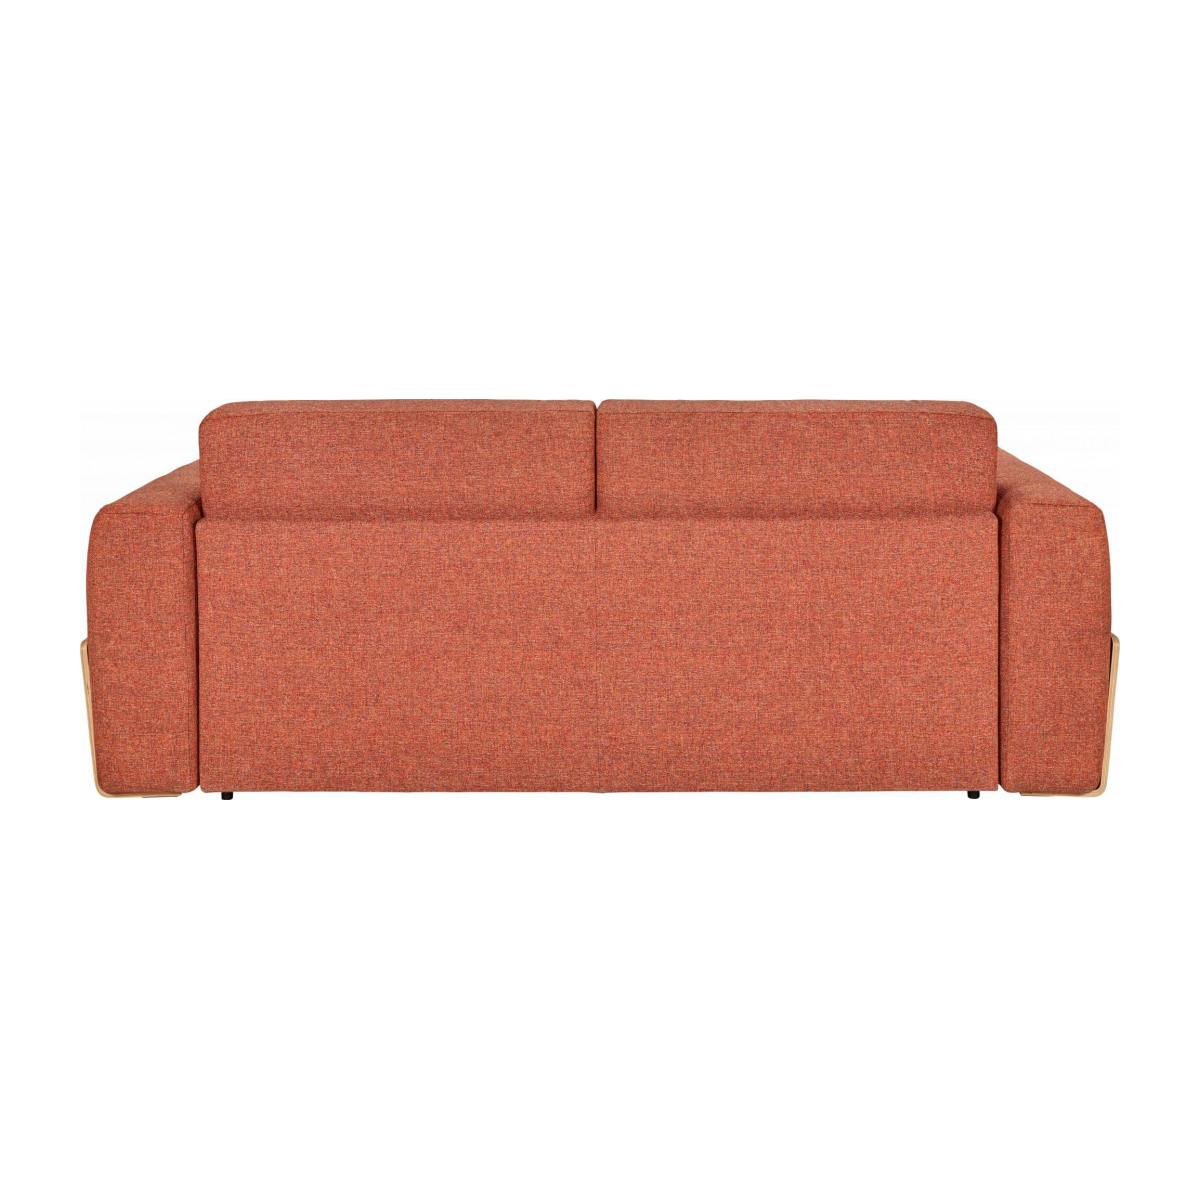 Canapé convertible 3 places en tissu - Orange  n°5